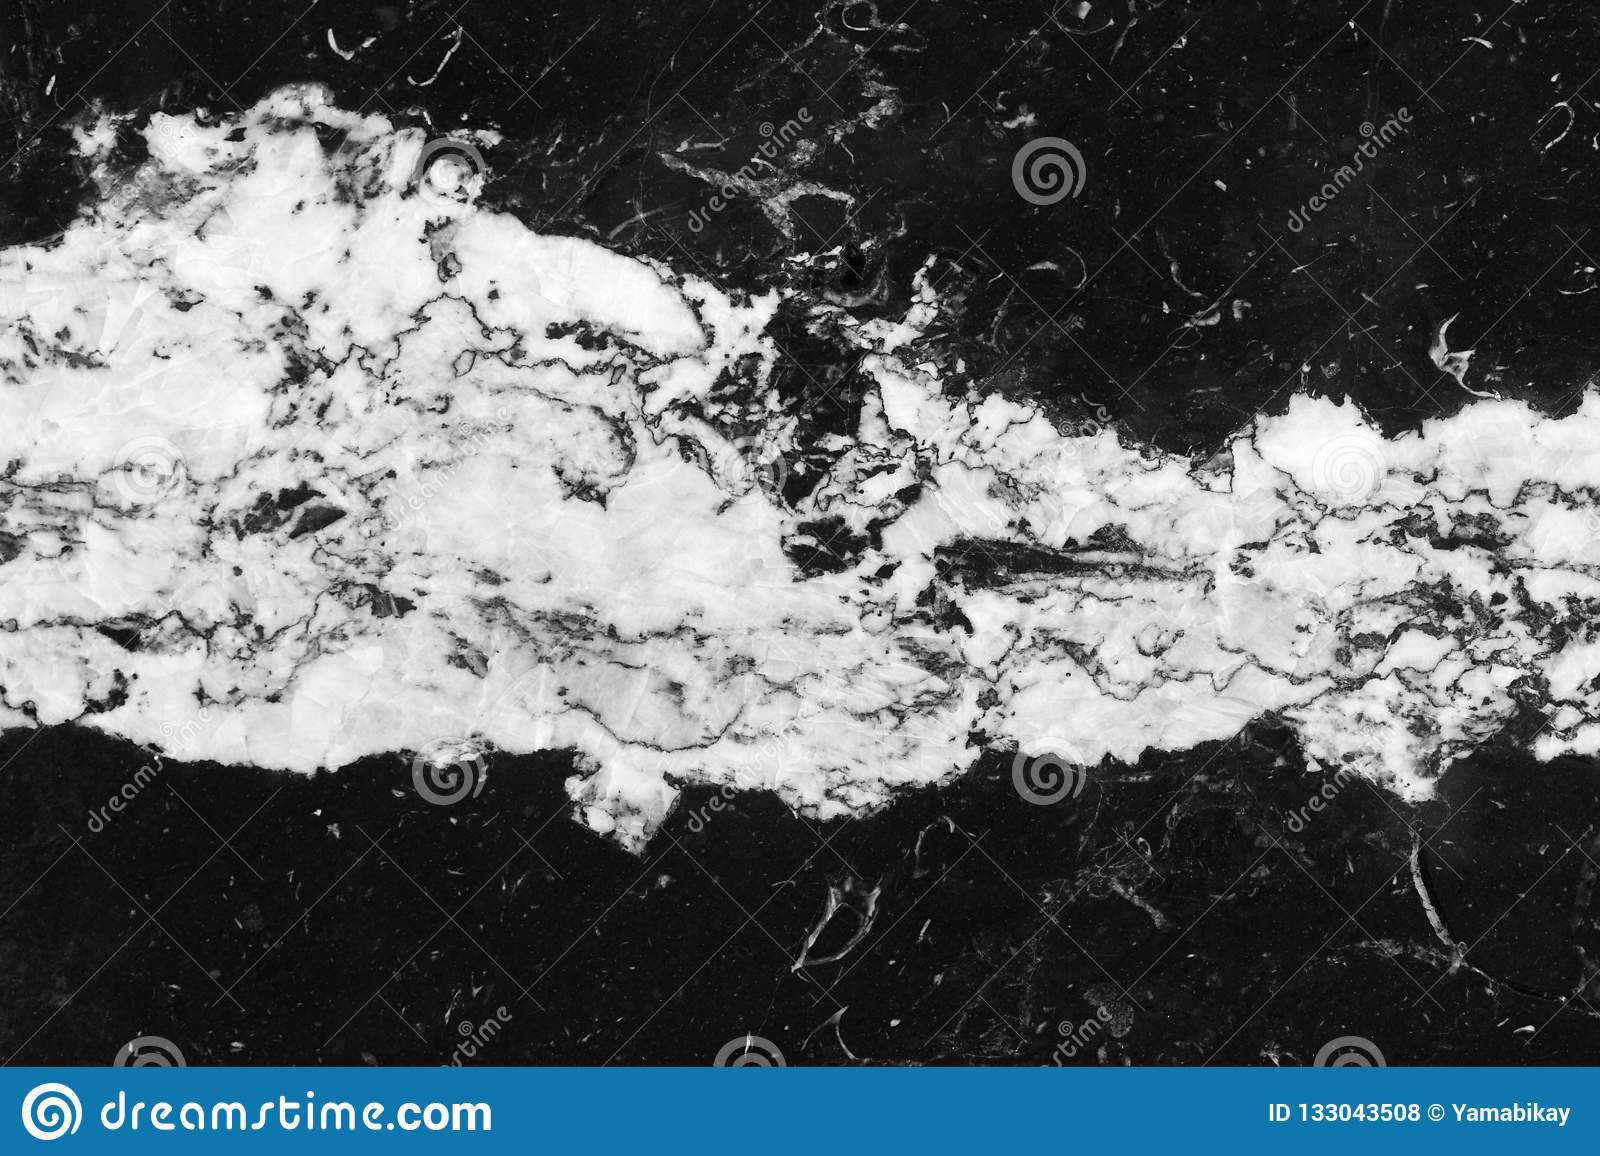 Abstract Black And White Granite Patterned Texture Background Stock Photo Image Of Kitchen Architecture 133043508